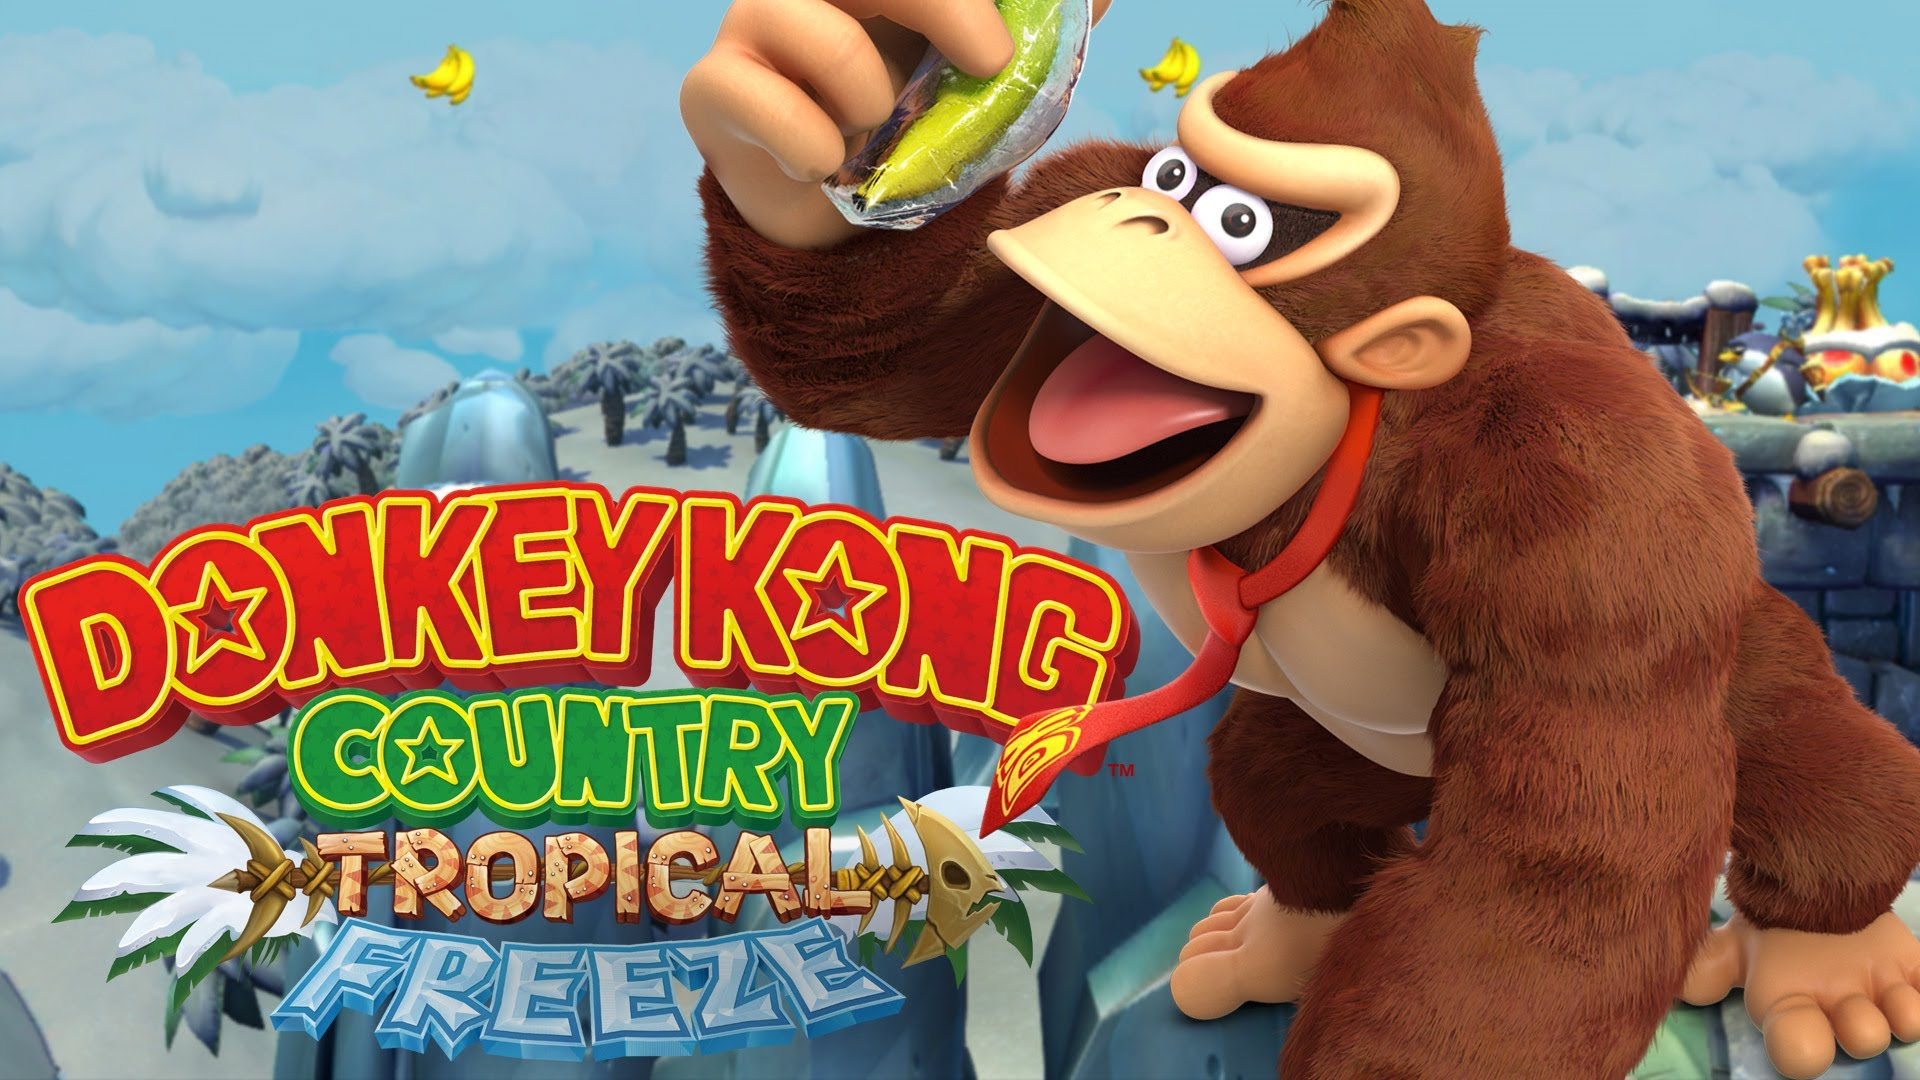 Donkey Kong Country Tropical Freeze Wallpapers Mega Themes